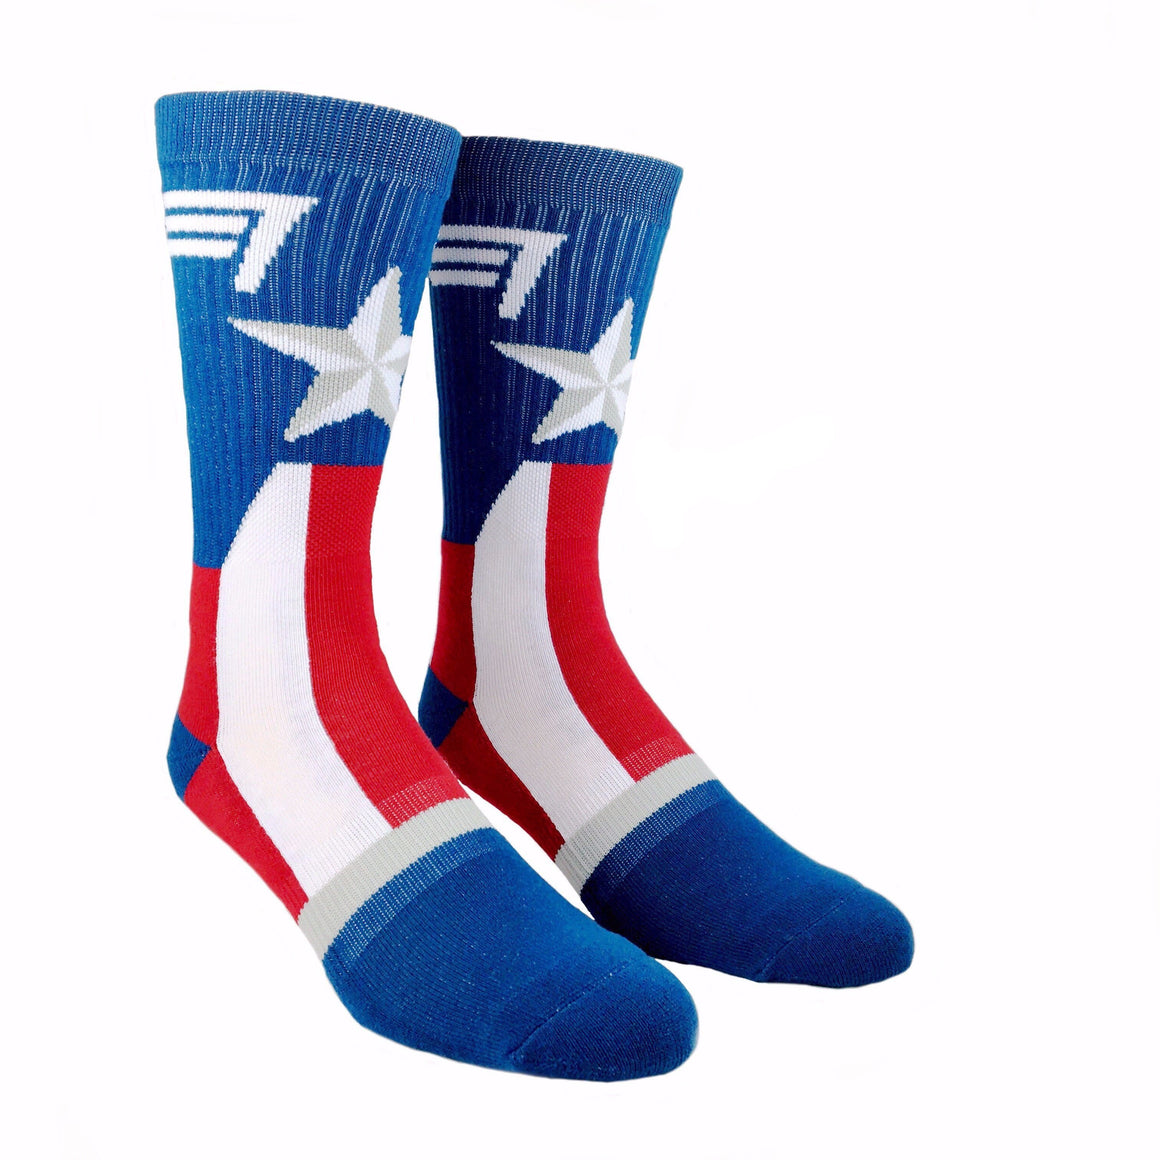 Socks - Marvel Captain America Suit Up Athletic Socks